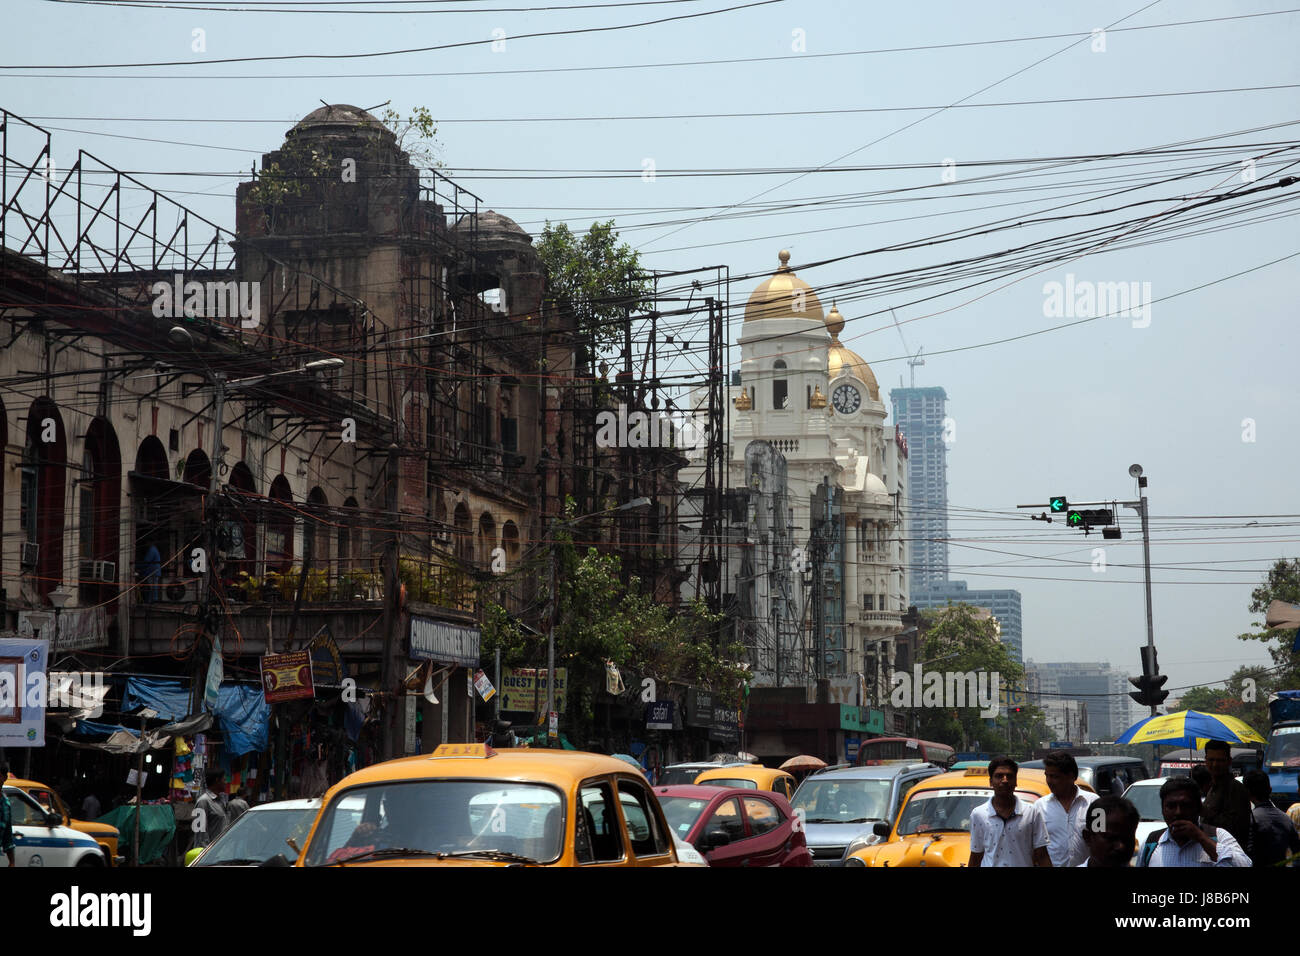 Chowringhee Road with the Metropolitan Building in the distance, Kolkata - Calcutta - West Bengal India Stock Photo